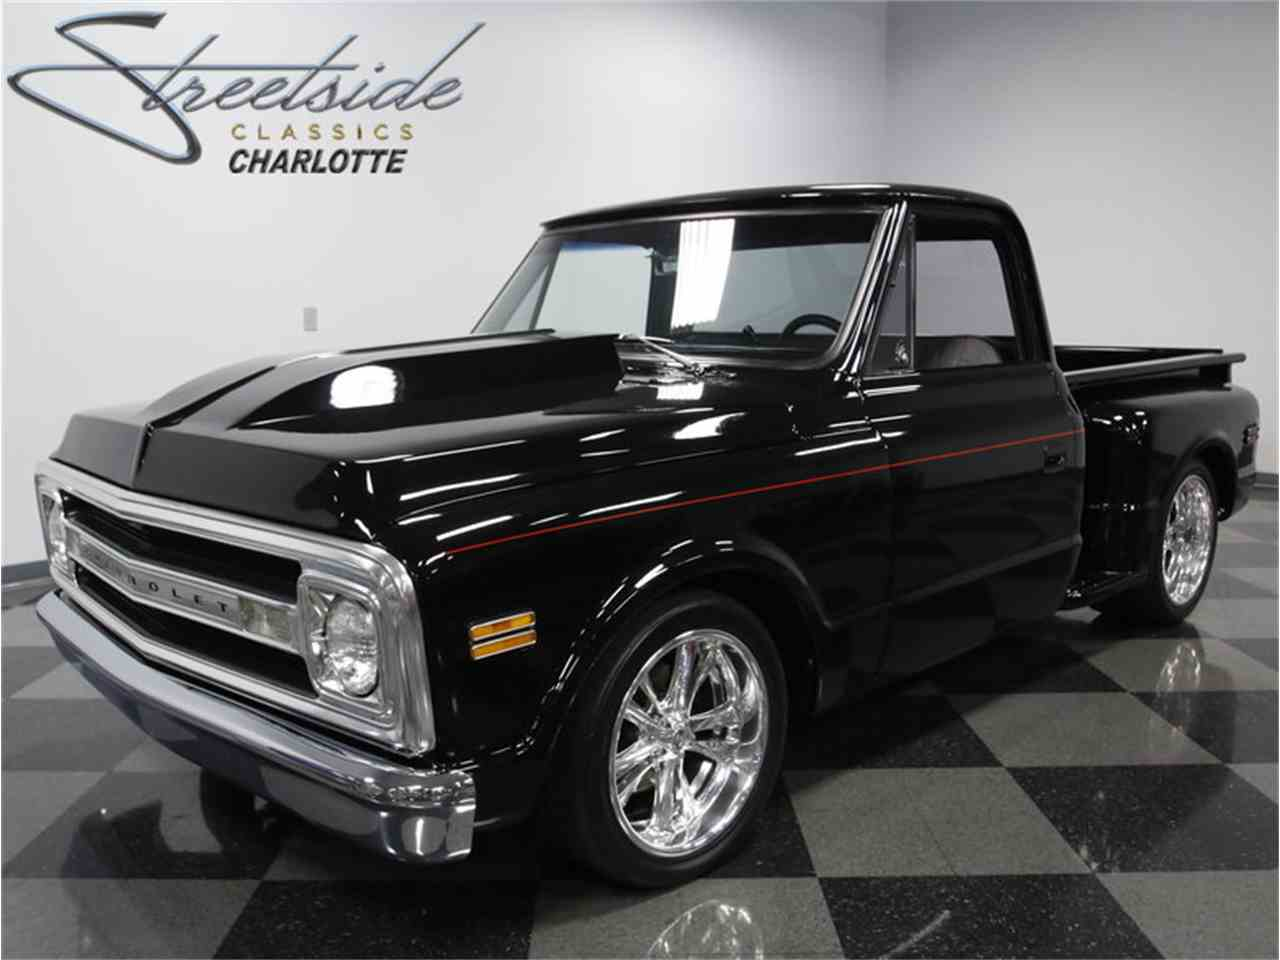 All Chevy 1969 chevy c10 for sale : 1969 Chevrolet C10 Supercharged for Sale | ClassicCars.com | CC-993805